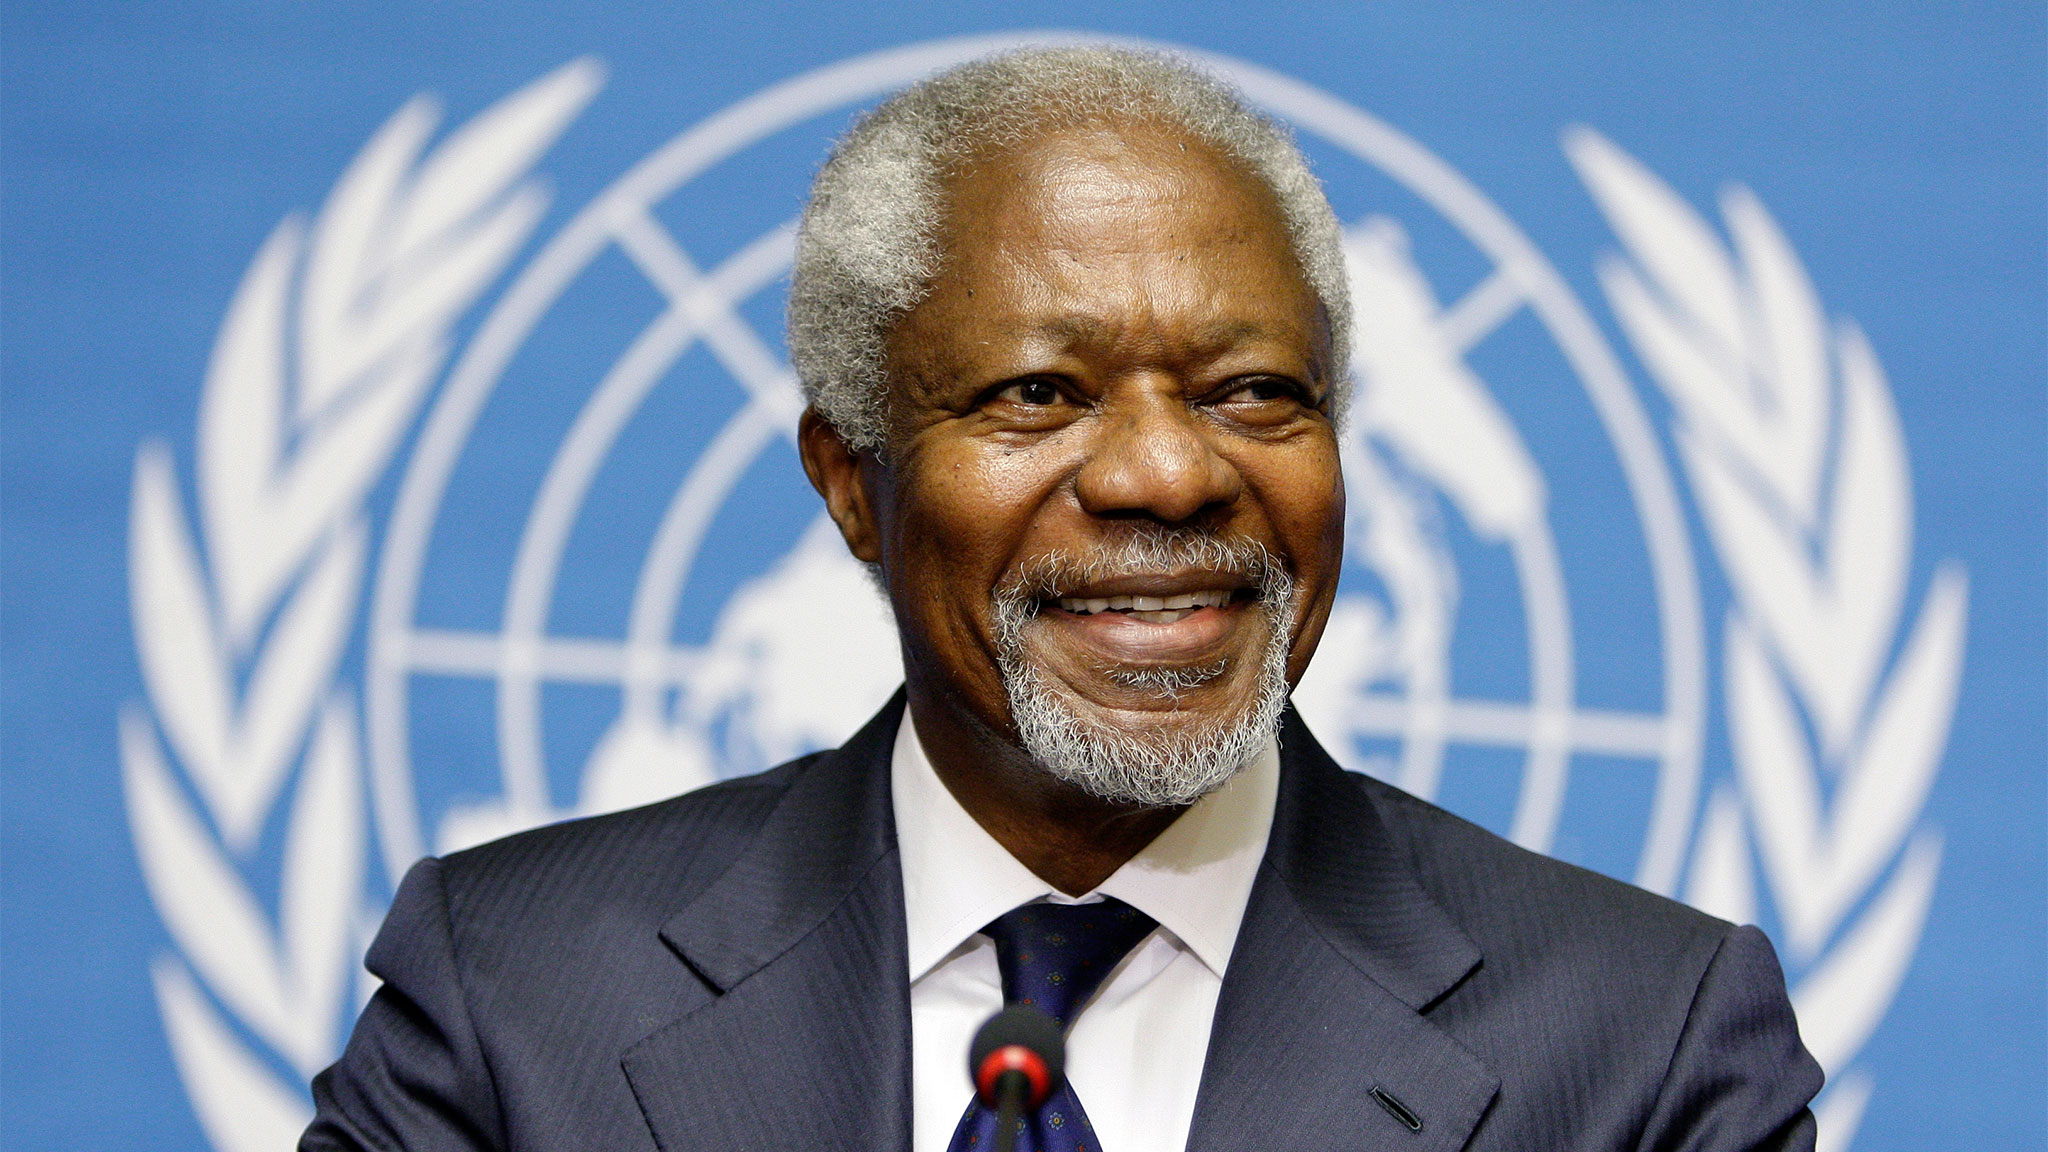 Leadership lesson from Kofi Annan